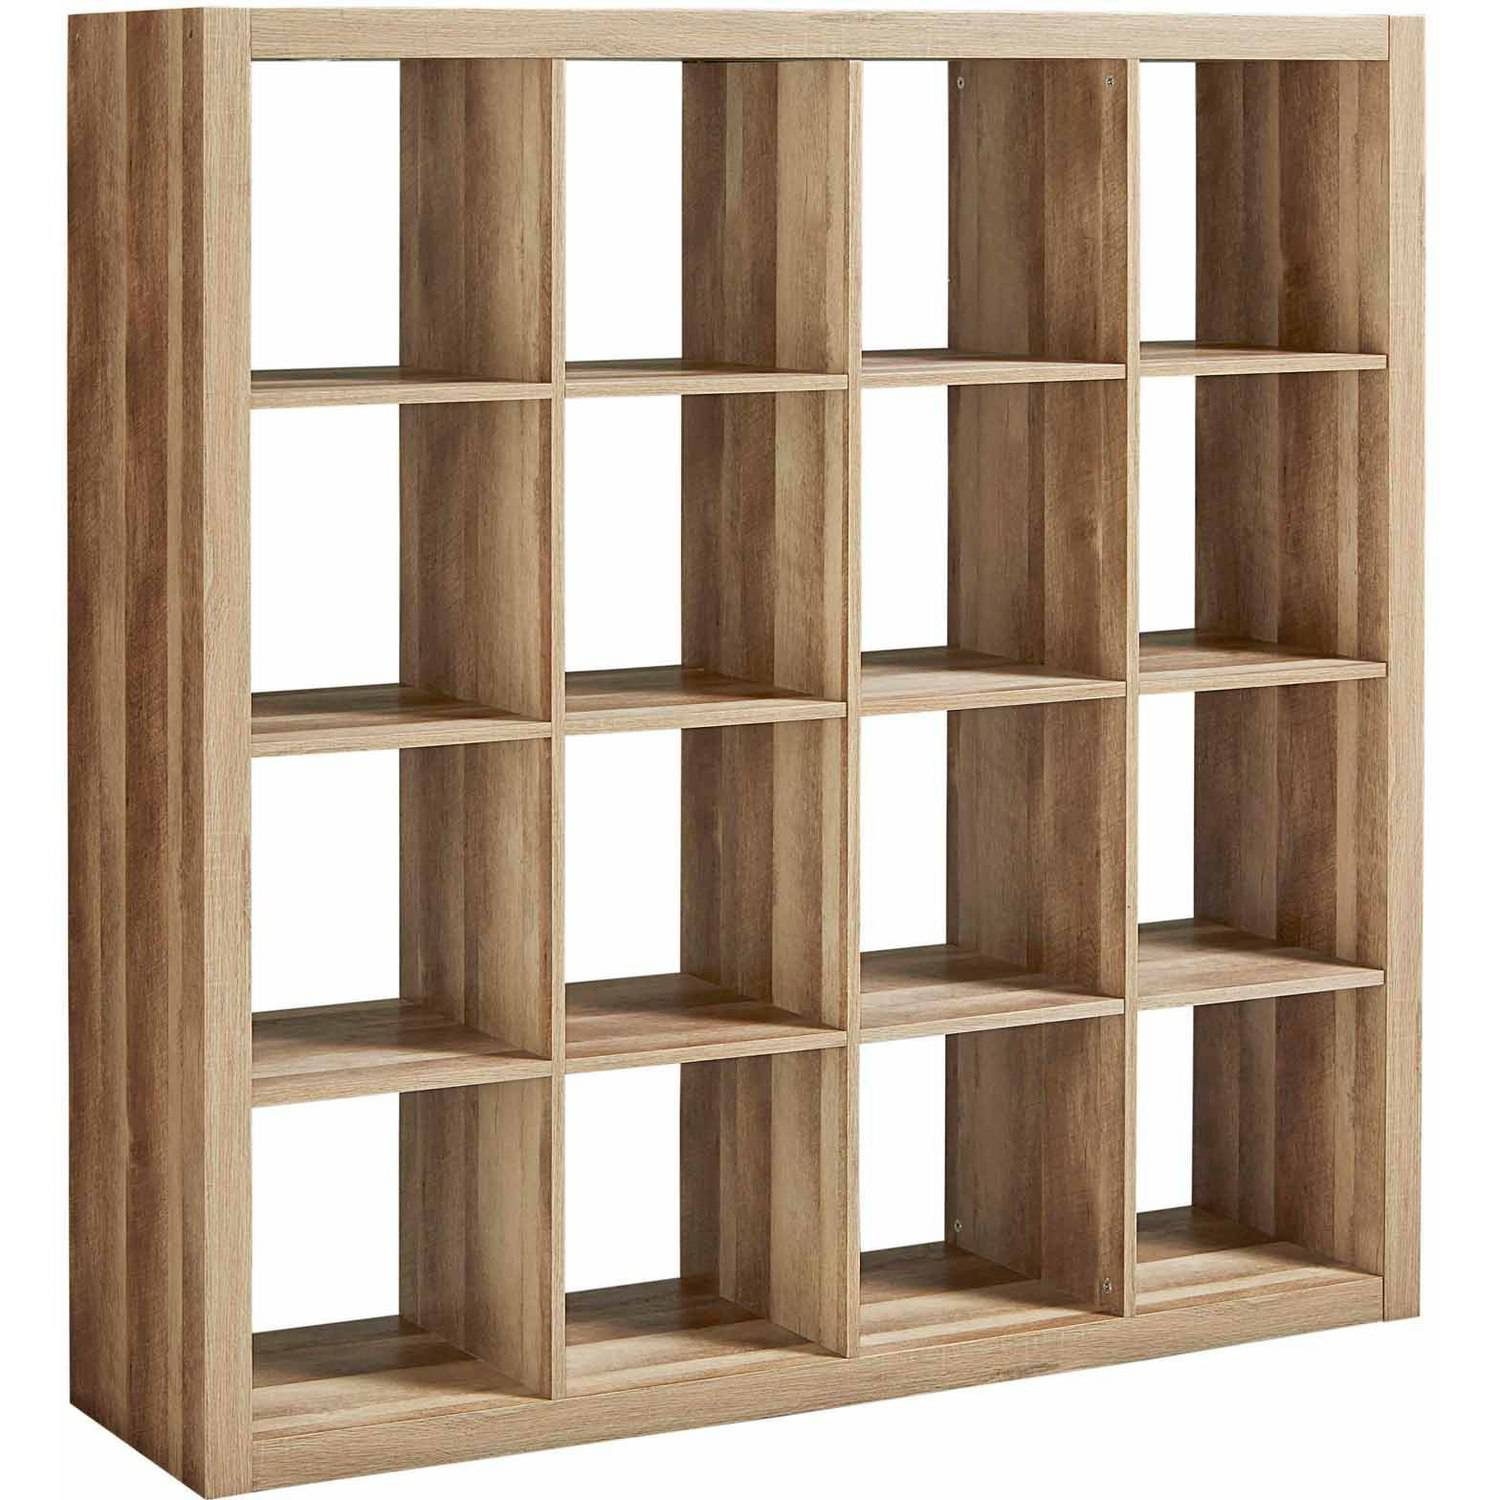 Better Homes and Gardens 16 Cube Storage Organizer Multiple Colors - Walmart.com  sc 1 st  Walmart & Better Homes and Gardens 16 Cube Storage Organizer Multiple Colors ...